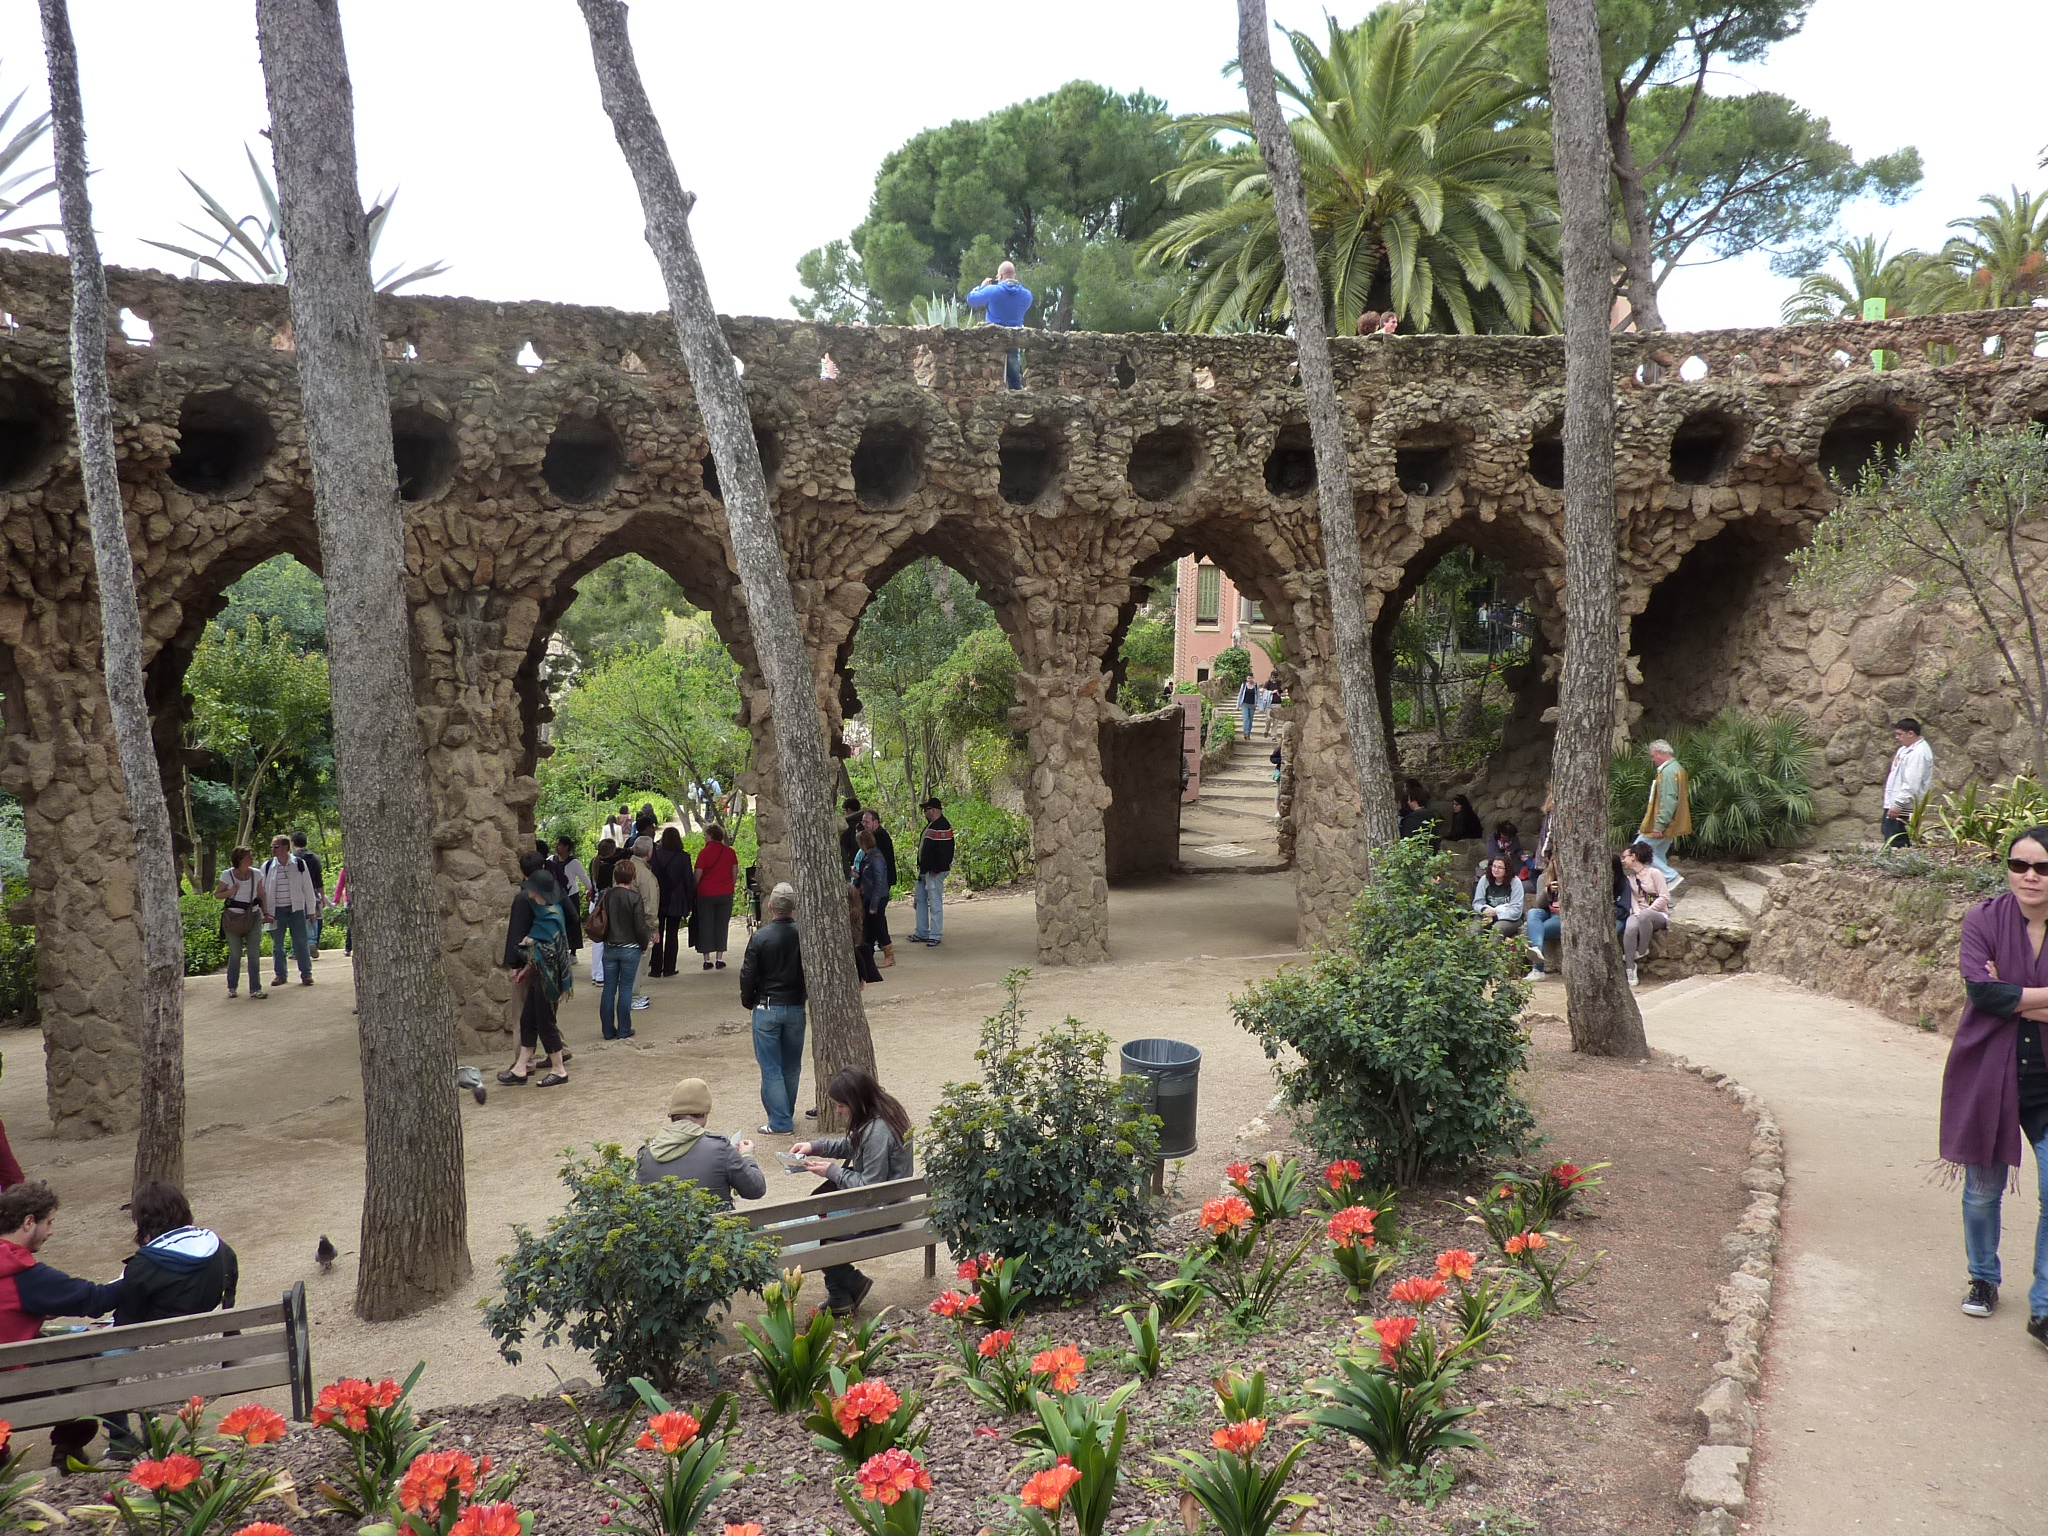 Parque Guell - Gamesforlanguage.com